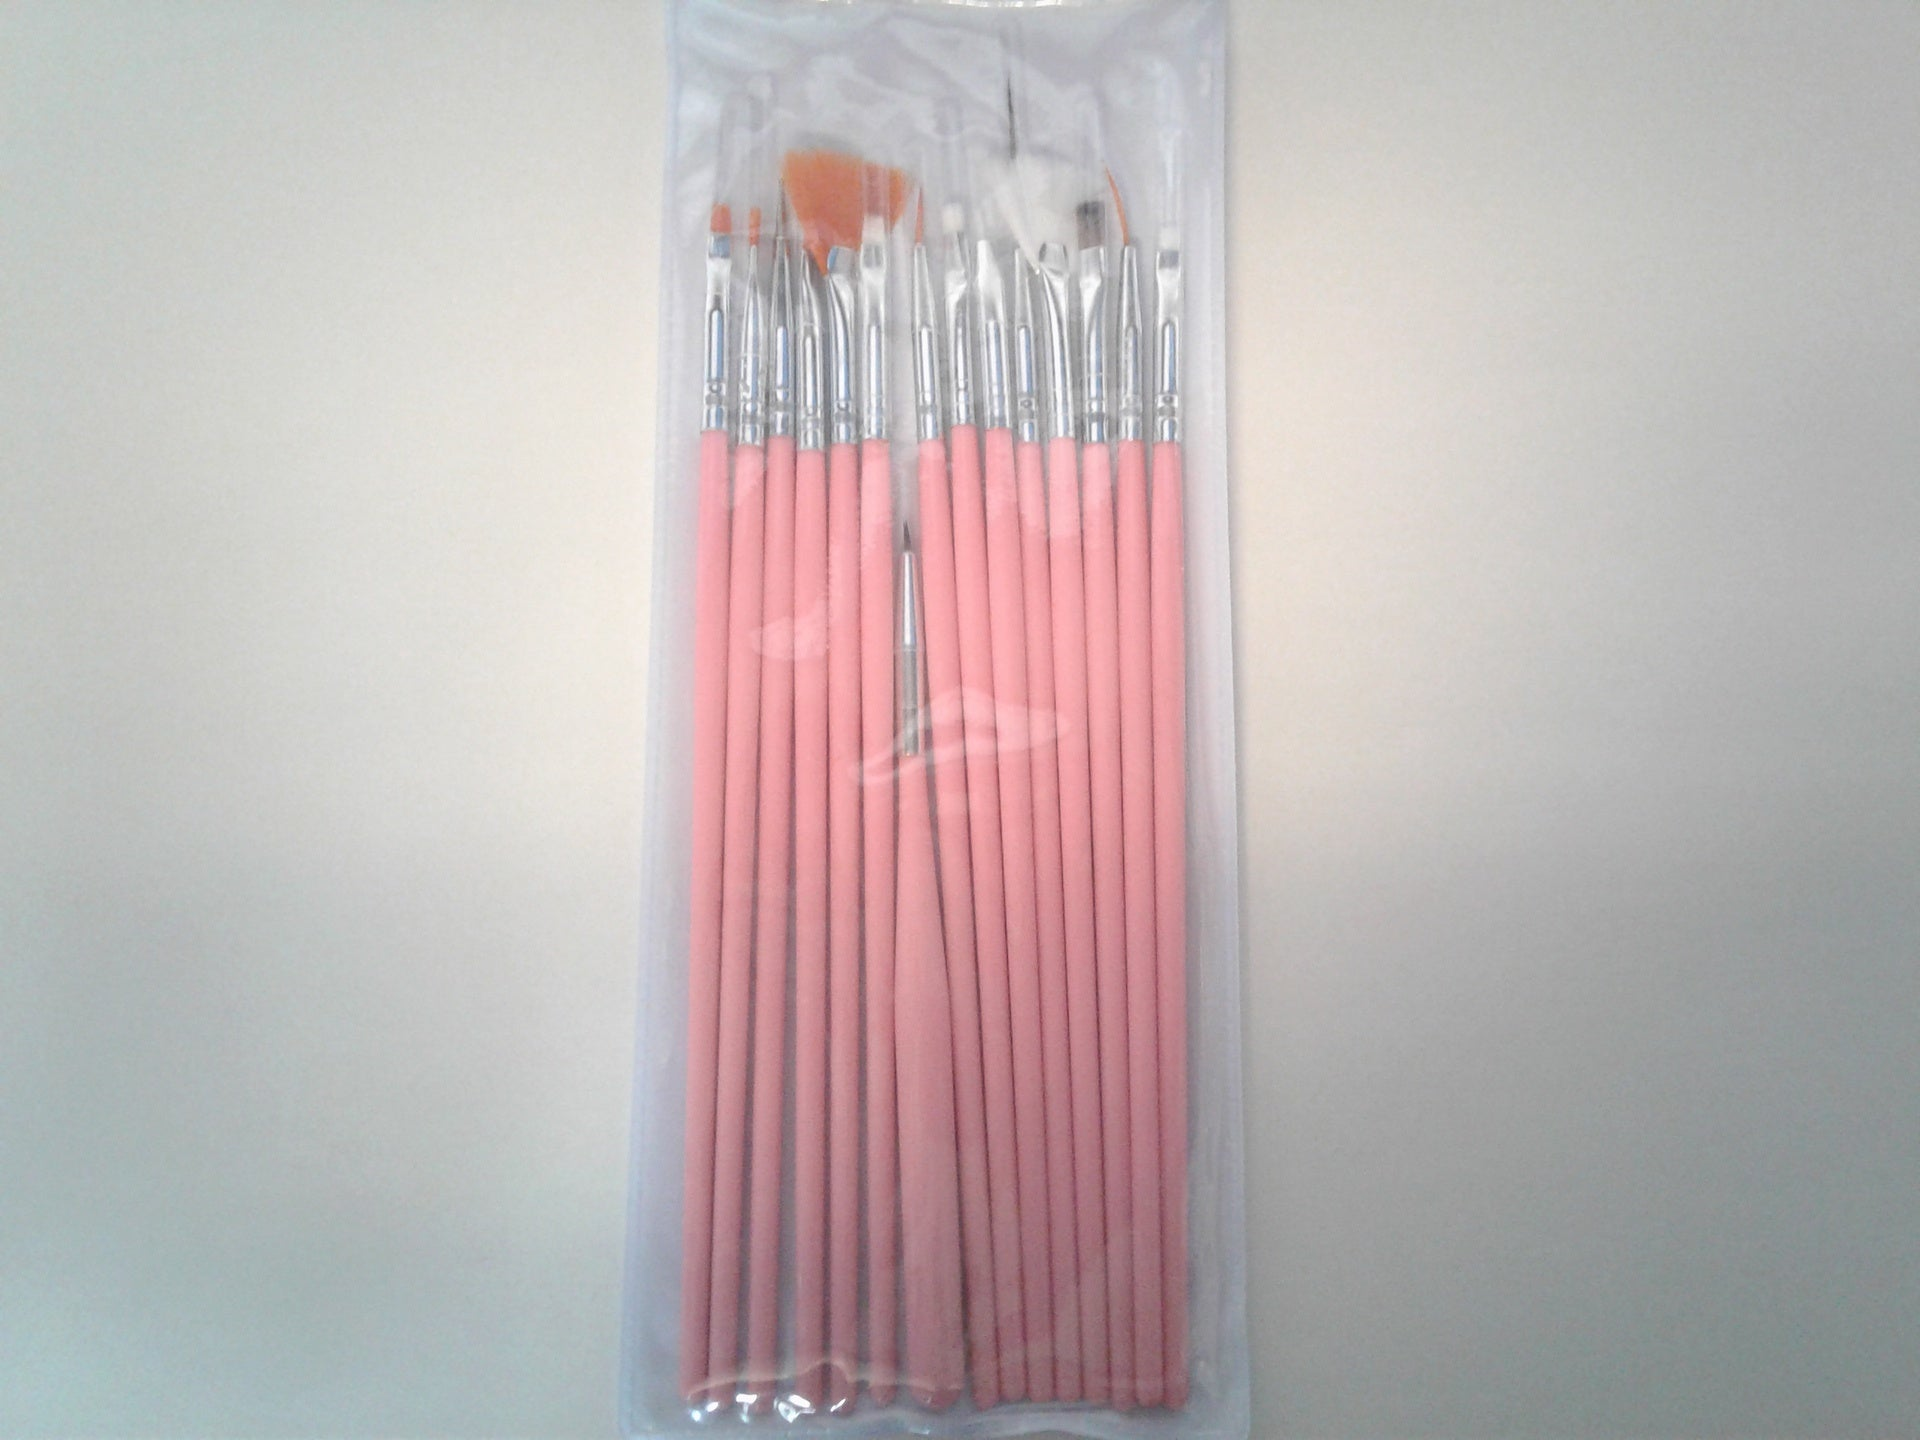 Brush Set 15 Piece